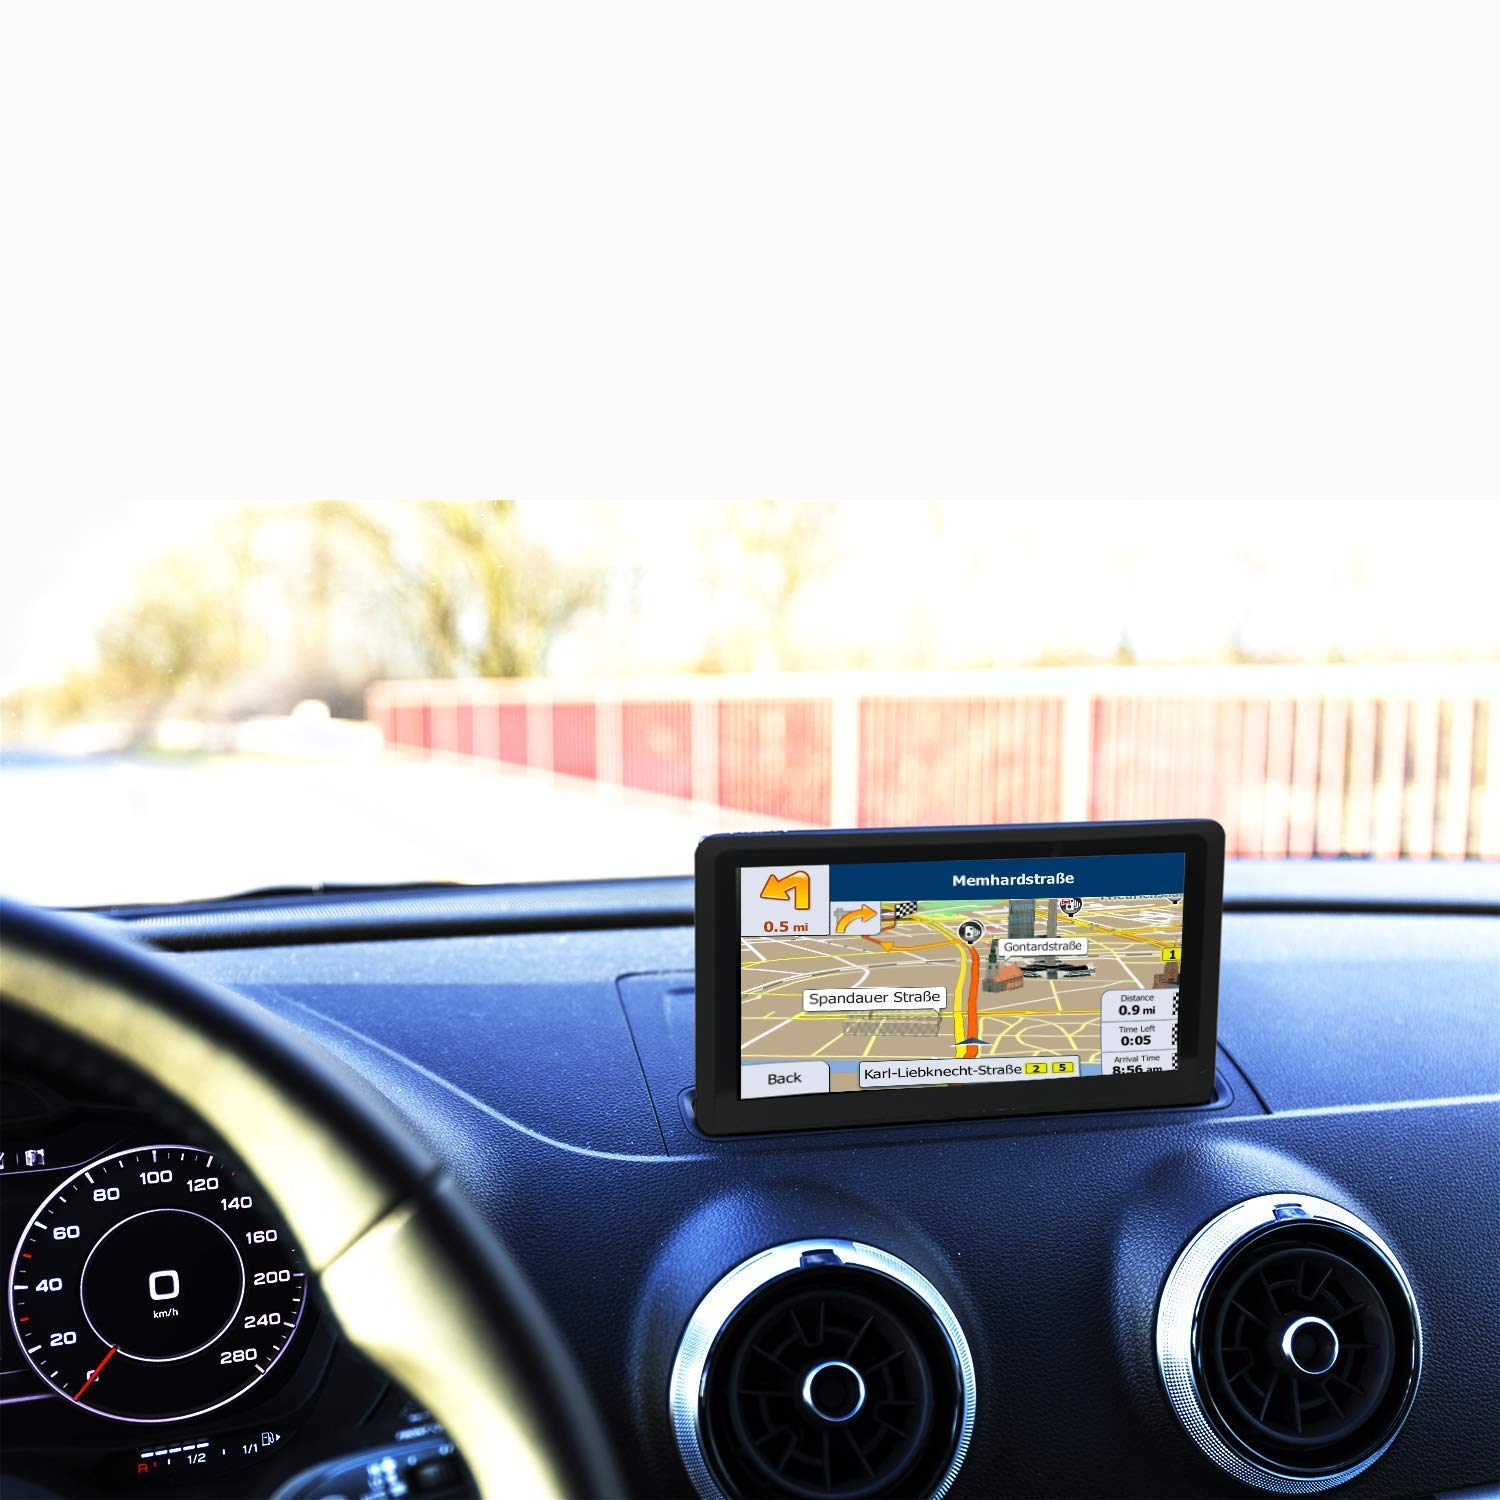 Car GPS Navigation 7 inch 8GB GPS Navigation System for Cars, Vehicle GPS Navigator, Lifetime Map Updates, High Brightness Touch screen, Pre-installed USA Maps